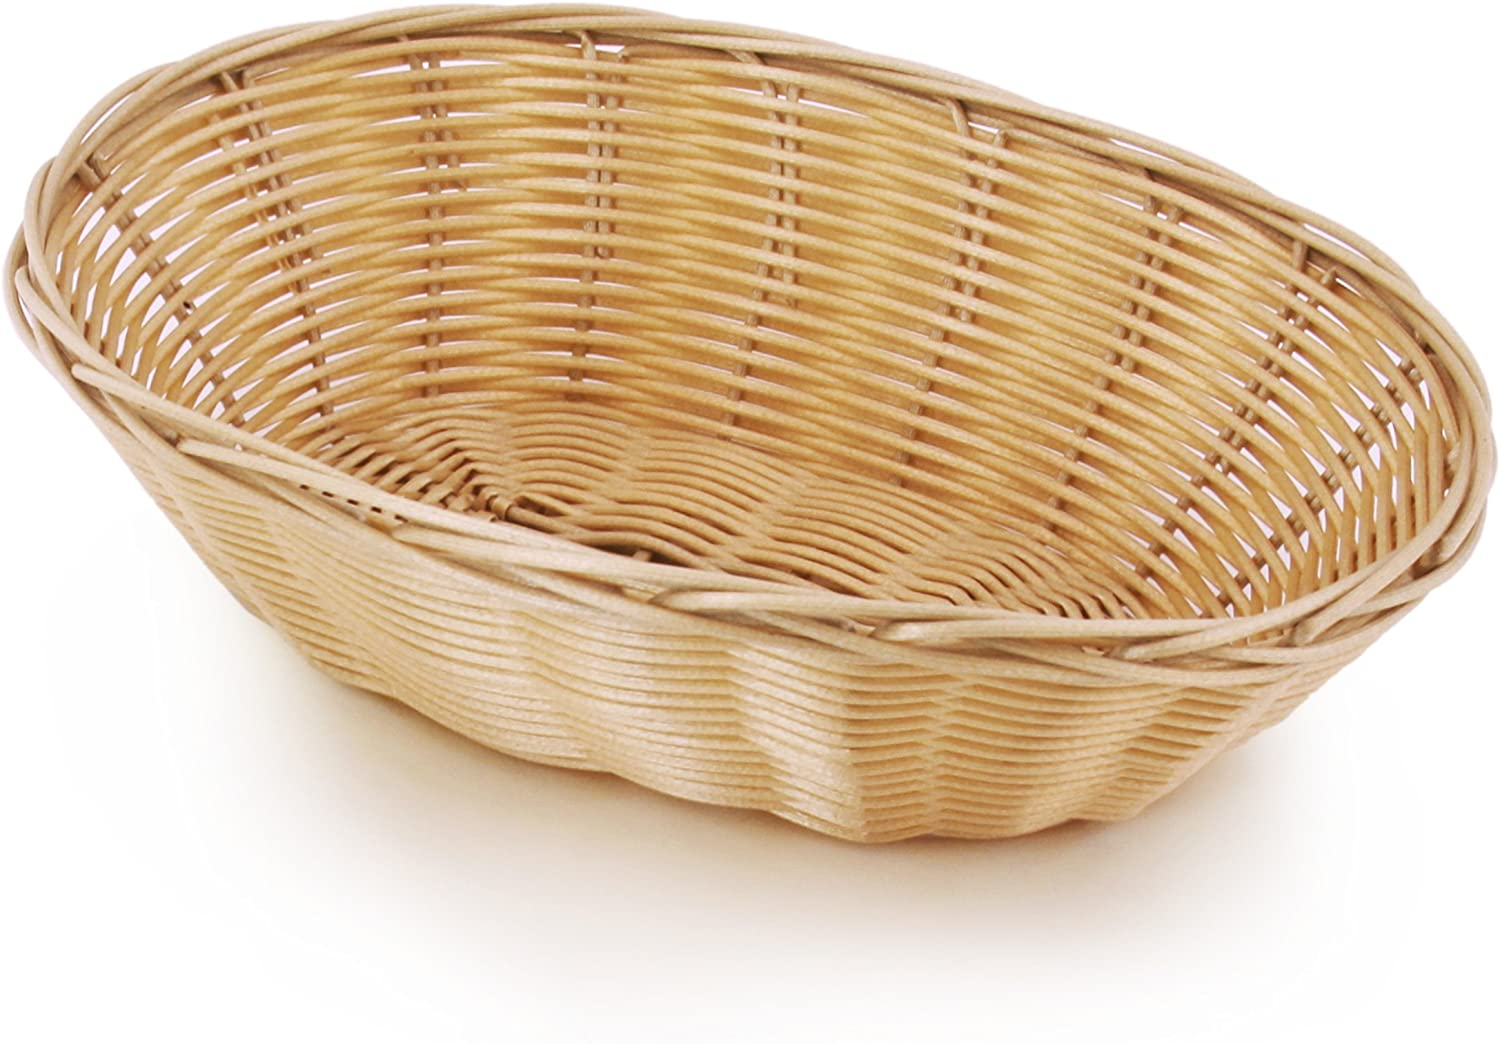 New Star Foodservice 44225 Food Serving Baskets 9.5 x 6.5 x 2.75 inch Oval, Hand Woven, Polypropylene, Set of 12, Natural